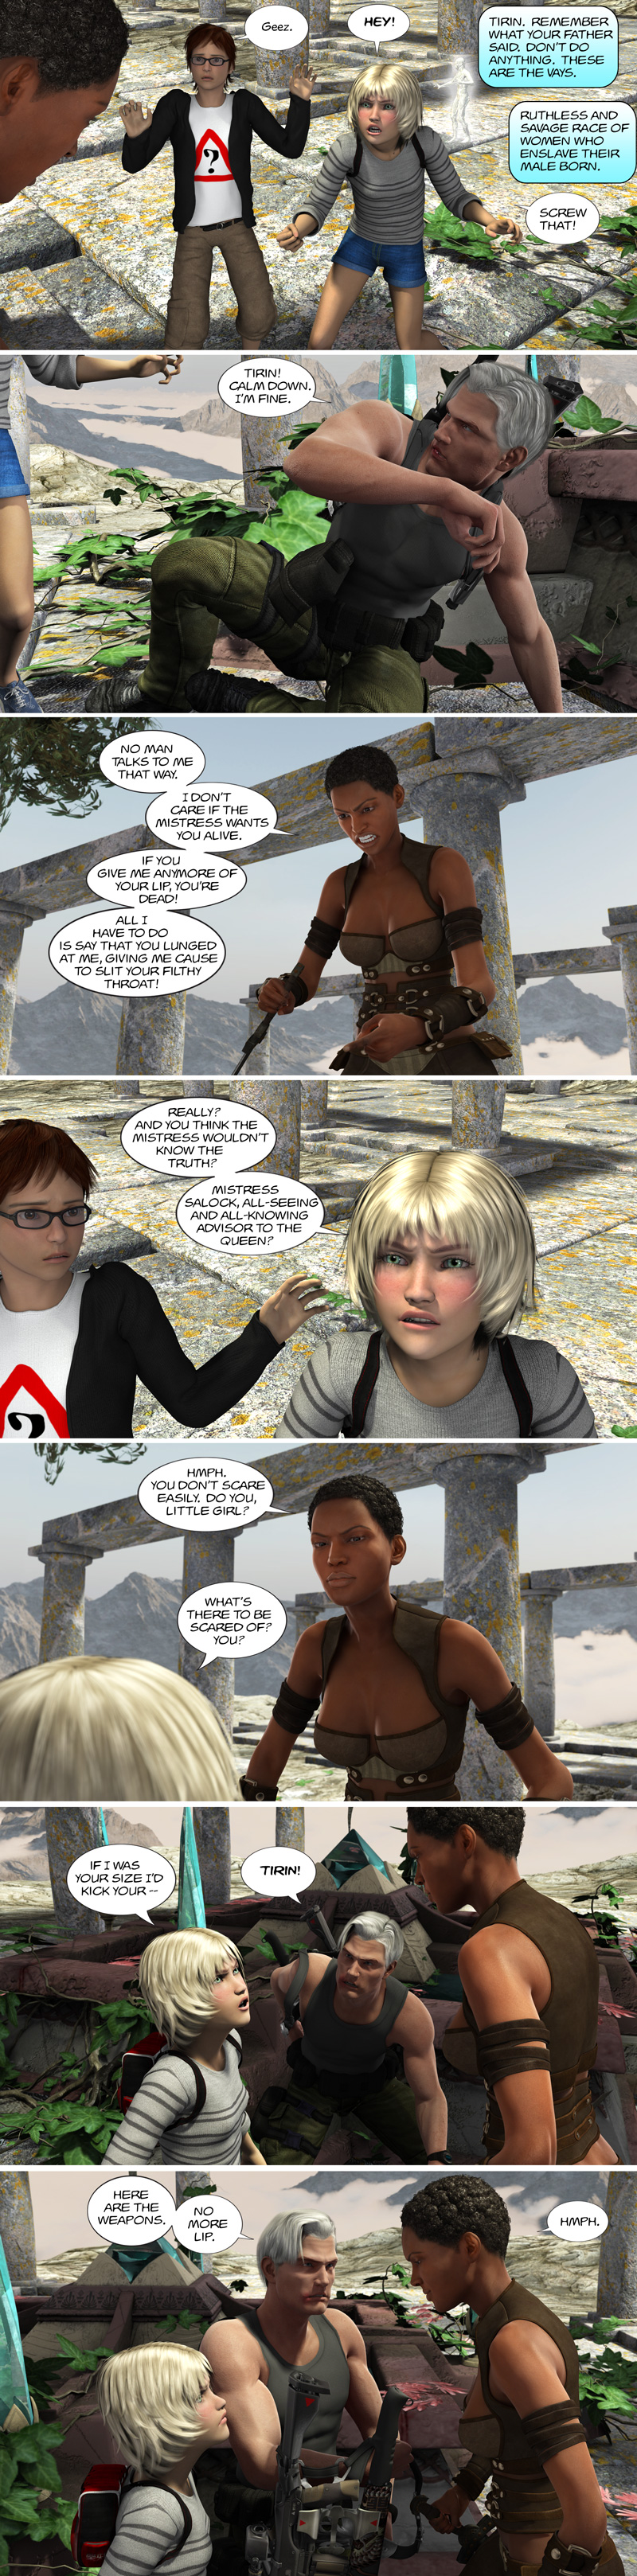 Chapter 11, page 41